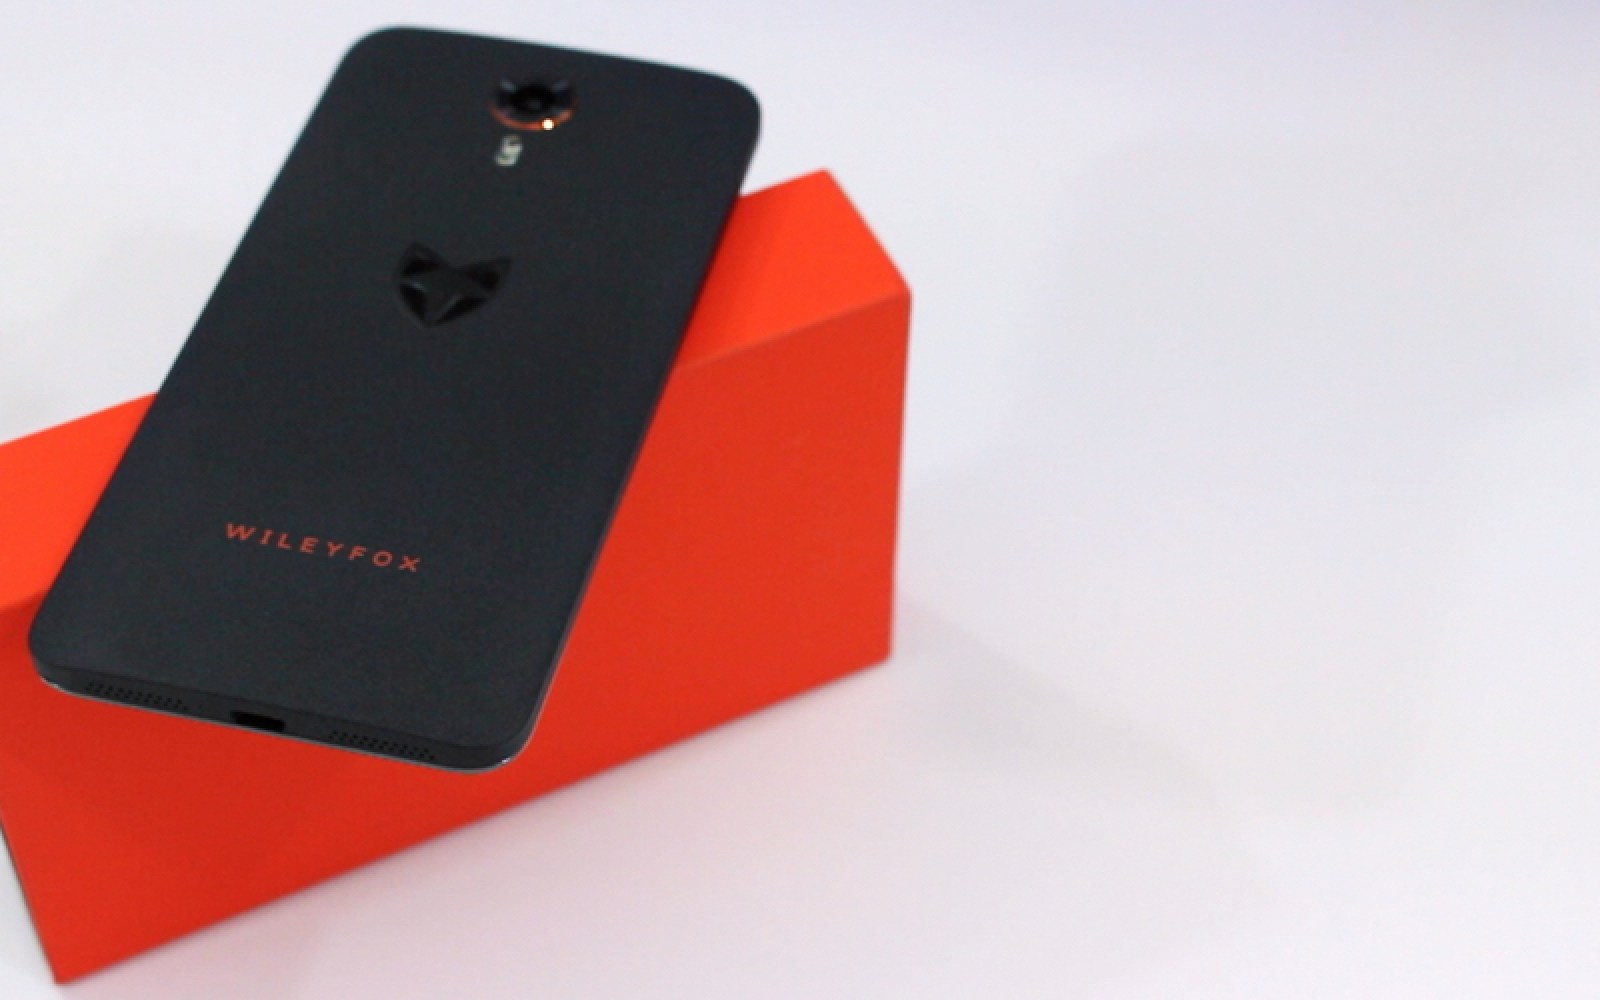 WileyFox Swift mini-review: Probably the best budget Android smartphone in the UK [Video]